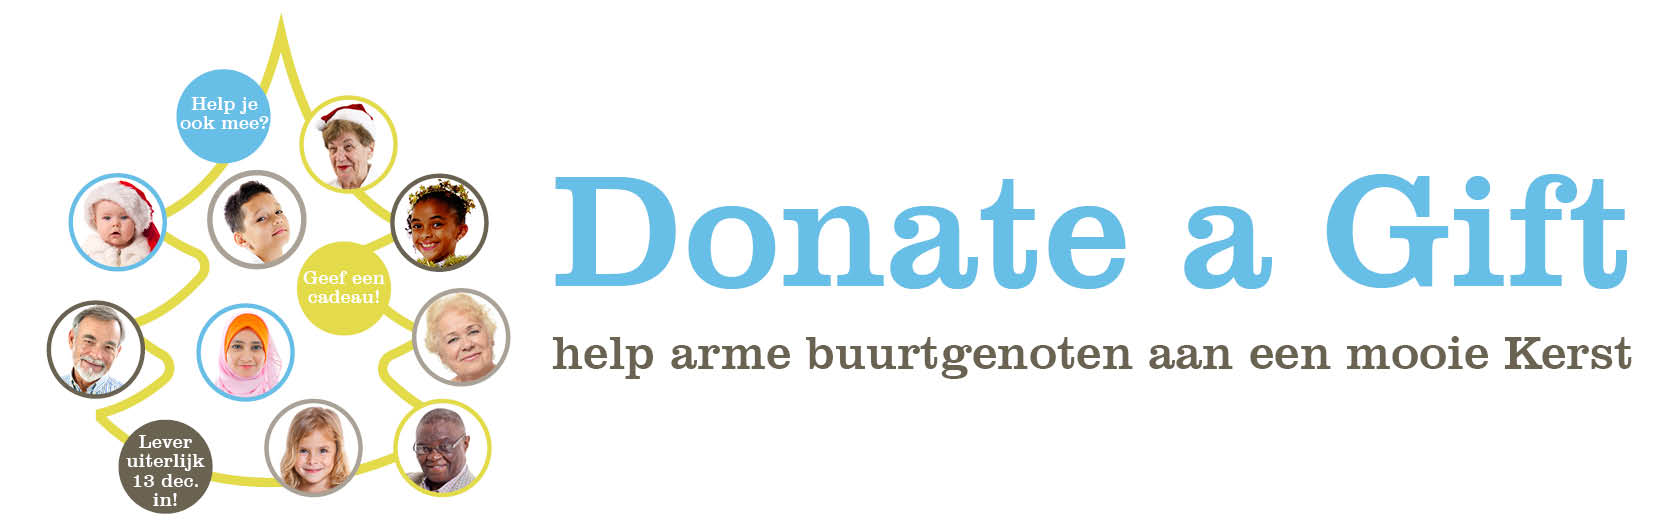 Webbanner Donate